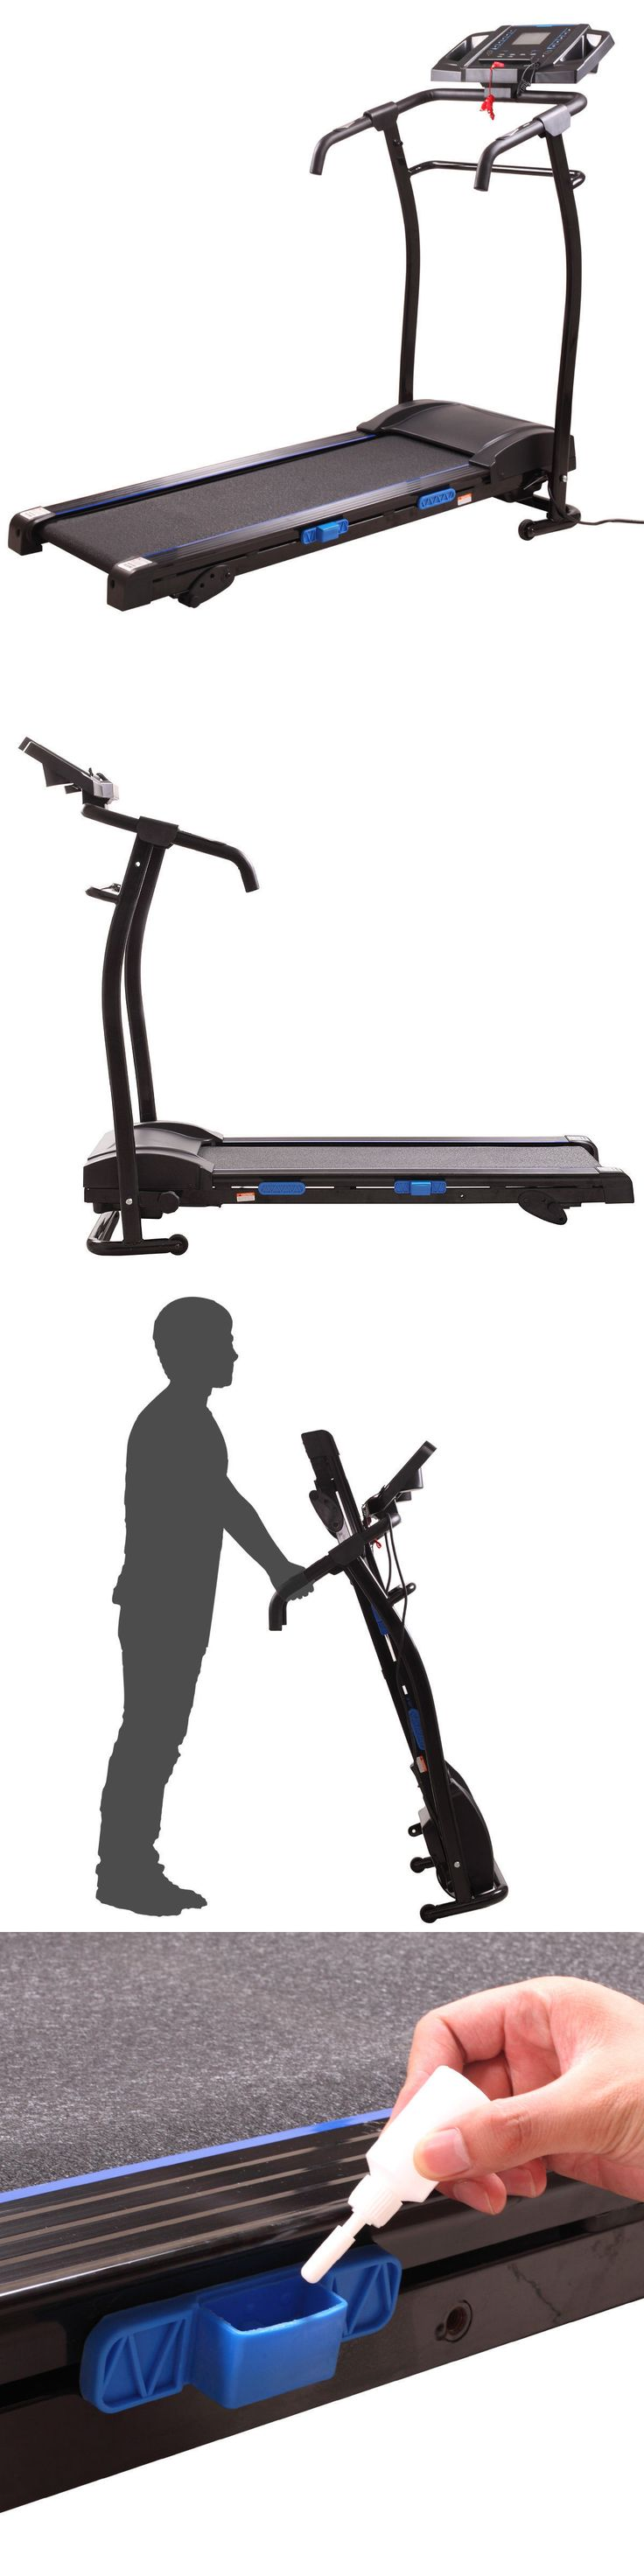 Treadmills 15280: Treadmill Portable 1500W Folding Electric Motorized Running Gym Fitness Machine -> BUY IT NOW ONLY: $294.99 on eBay!